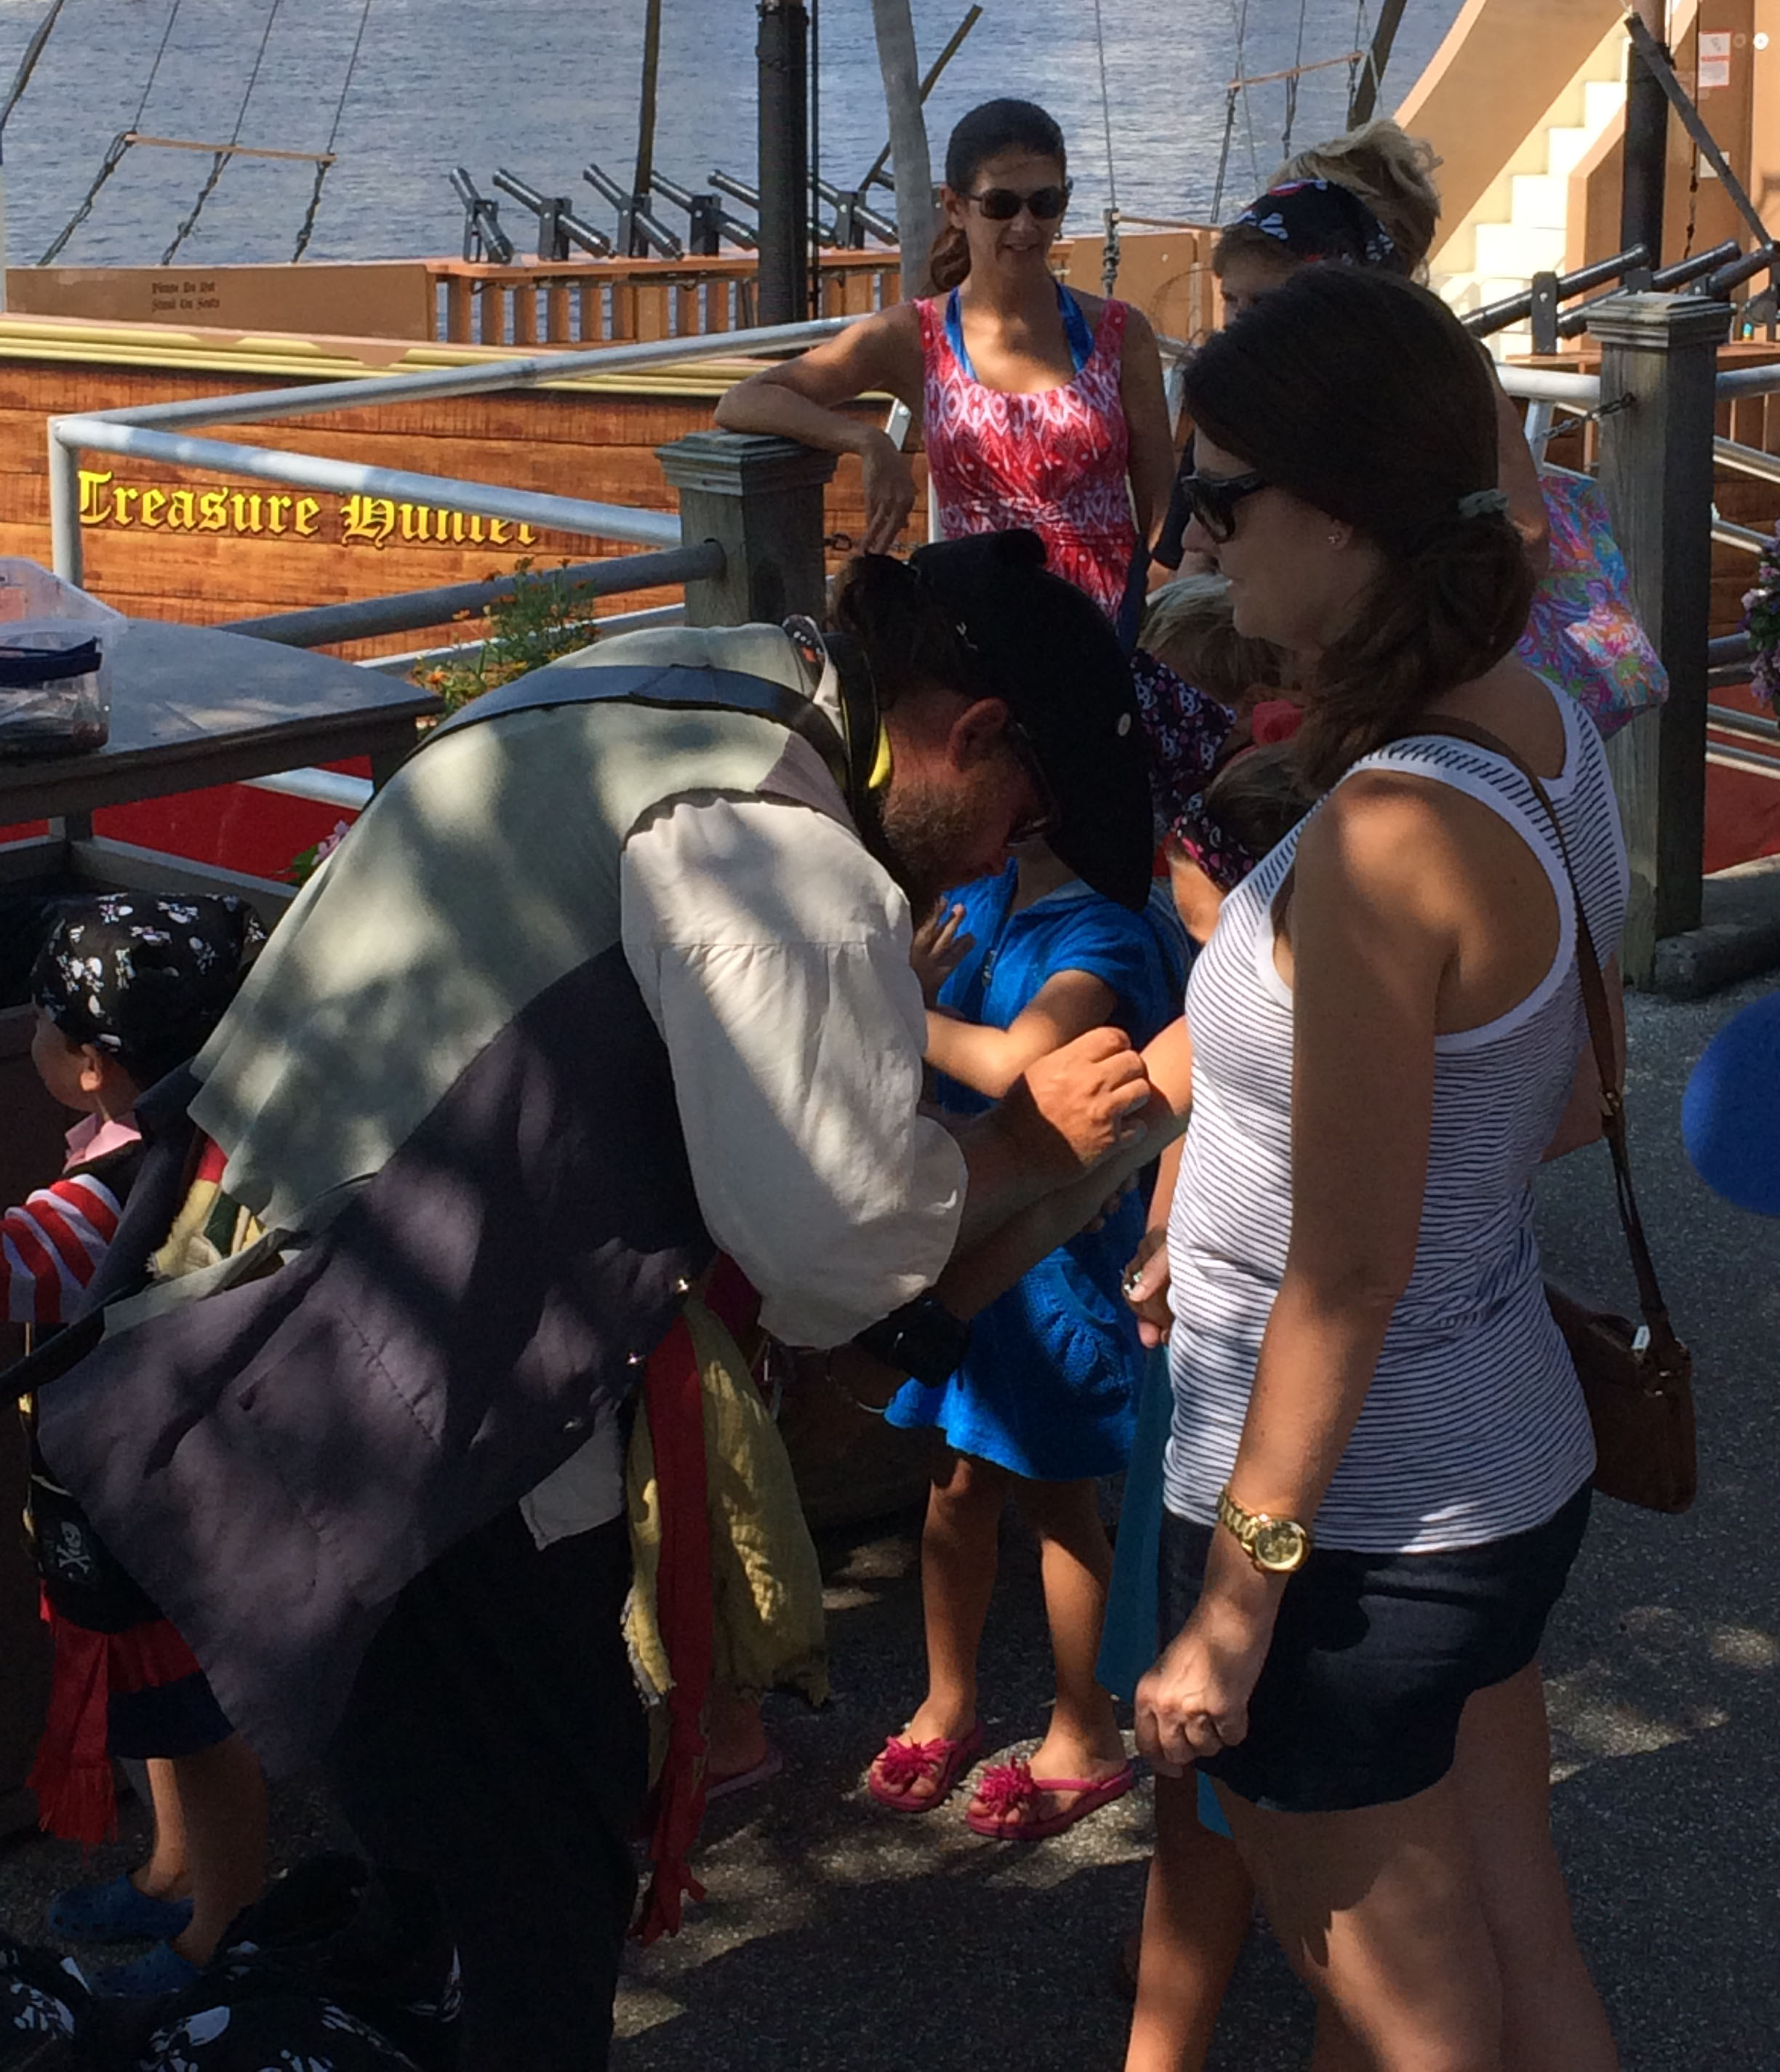 A pirate doing a little bit of face and arm painting before we boarded.